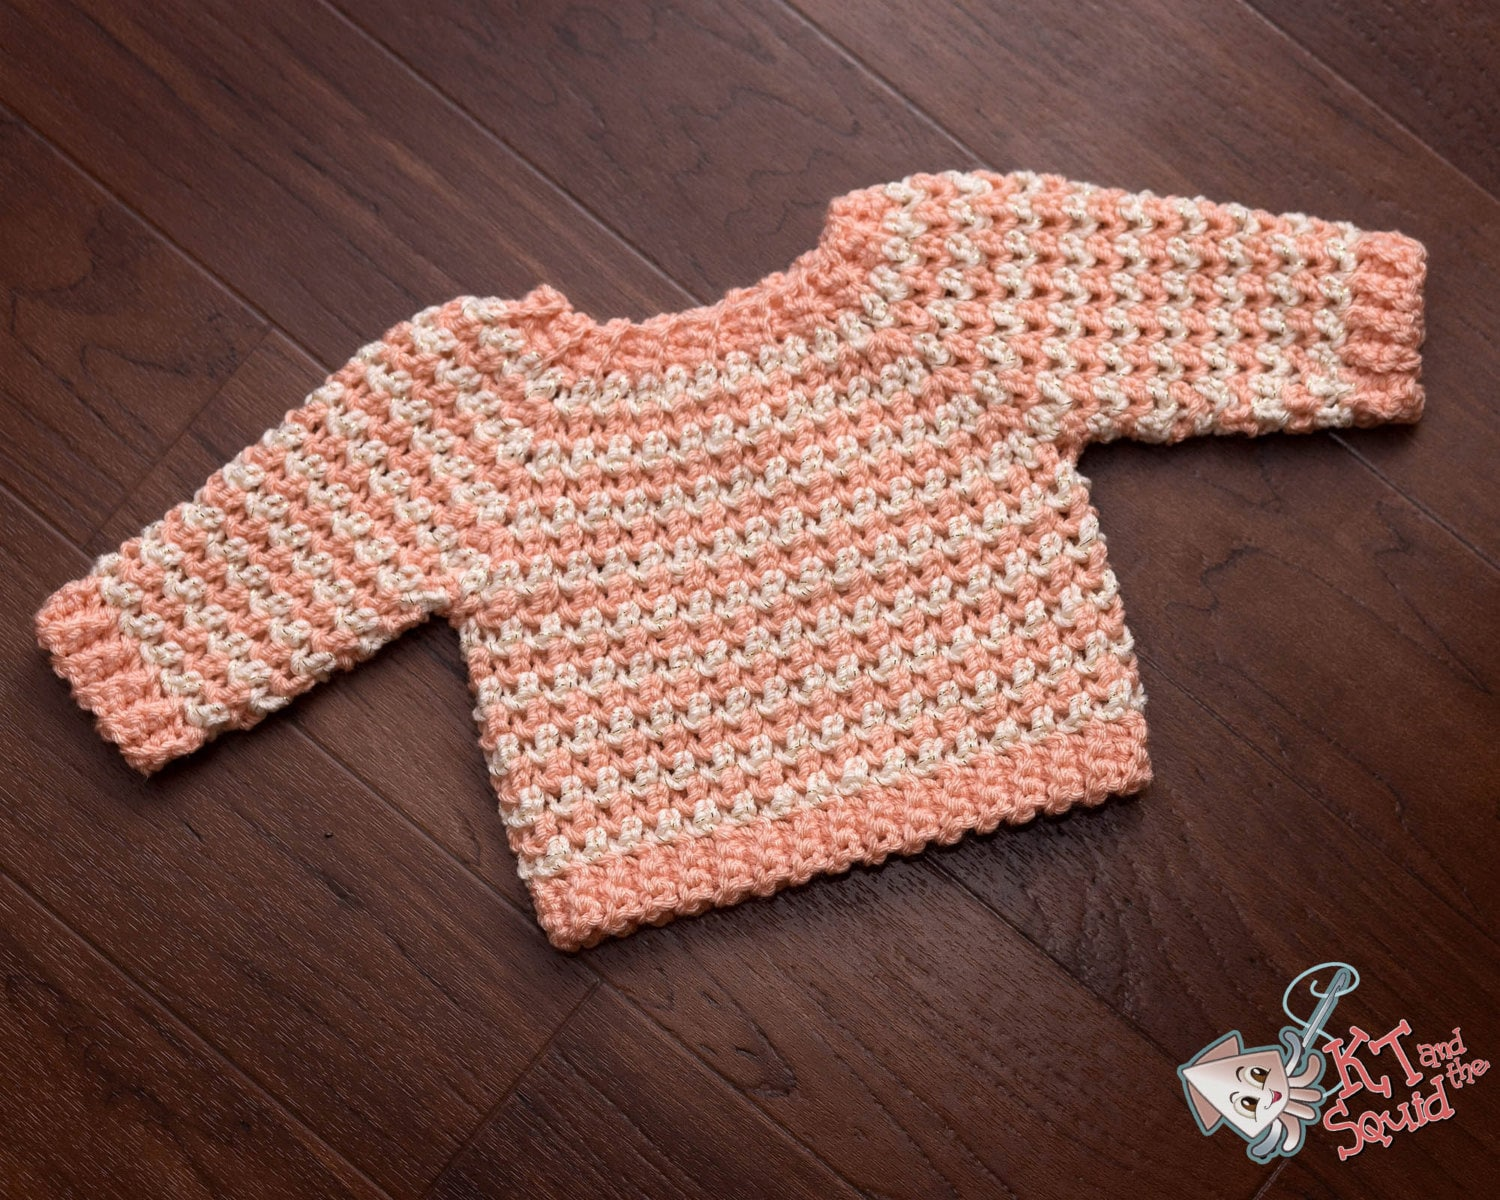 Infant crochet sweater pattrn top down baby sweater long zoom bankloansurffo Images